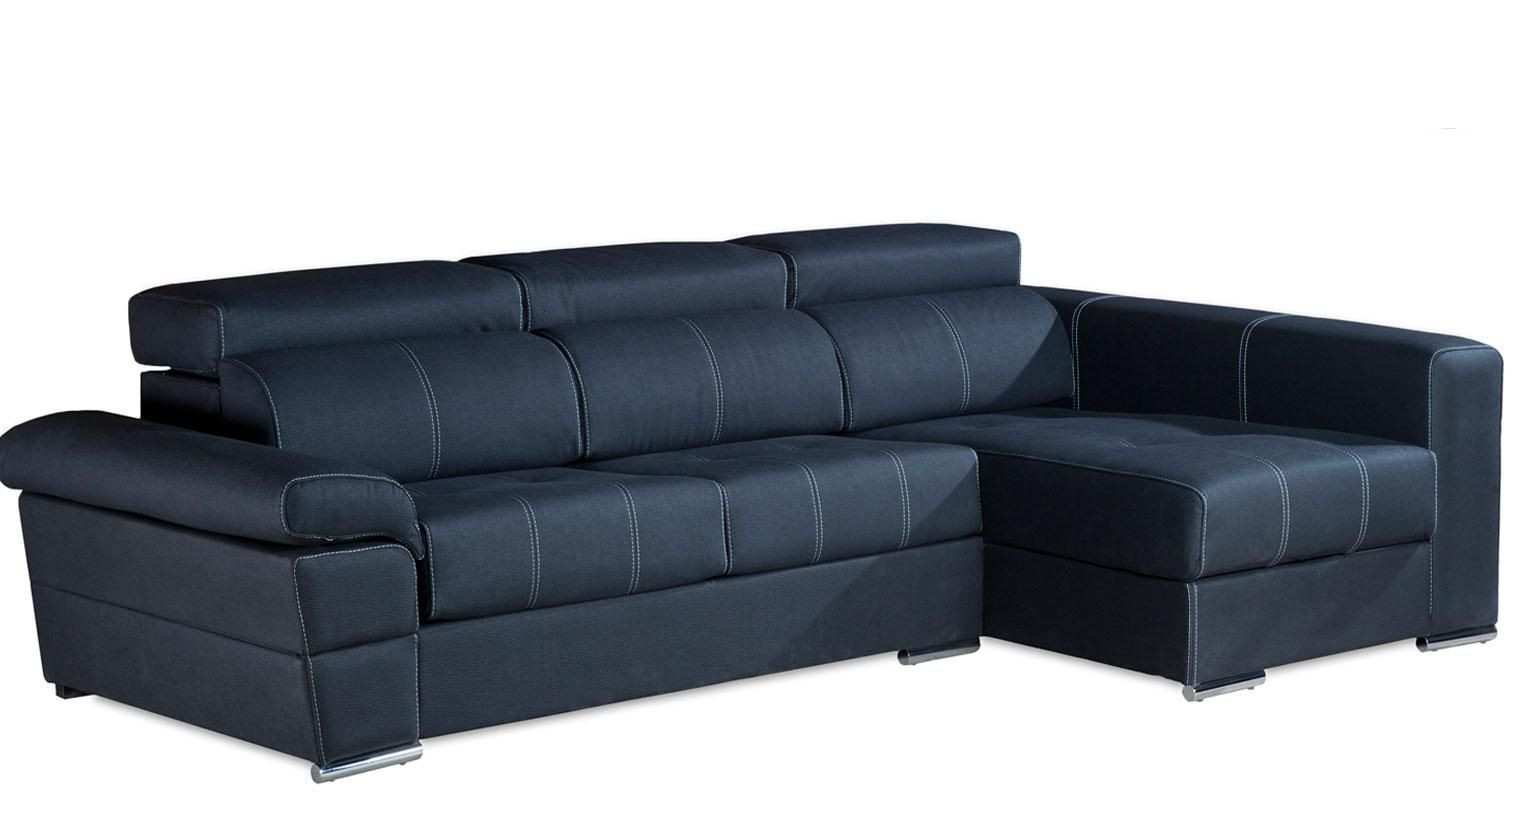 Sofa Chaise Longue 4 Plazas Brillante Chaise Longue Valencia Chaise Longue Tela Of 47  Único sofa Chaise Longue 4 Plazas